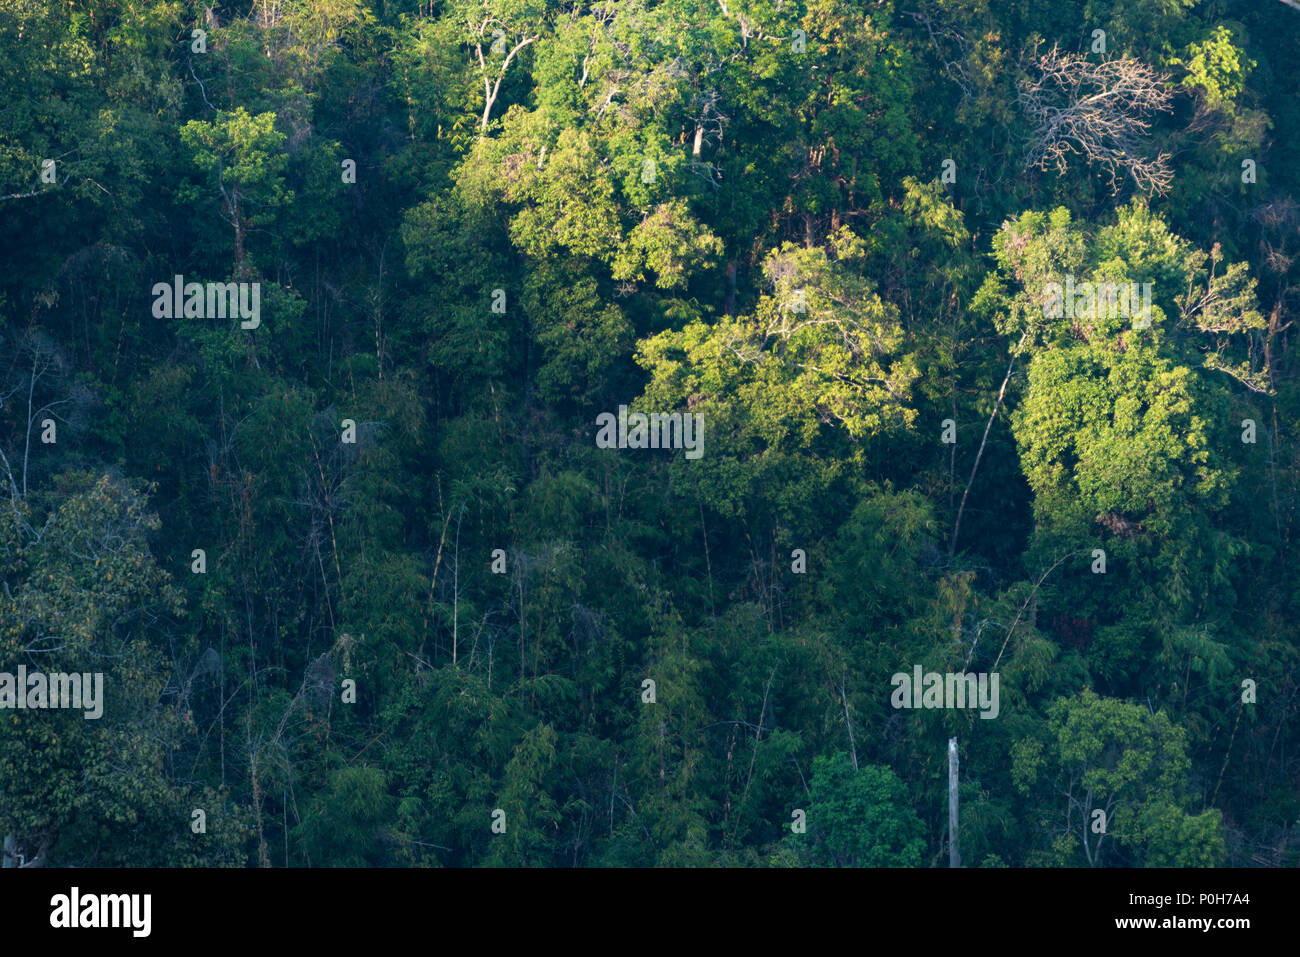 Select from premium tropical evergreen forest of the highest quality. The Atmosphere Of Tropical Evergreen Forest In The Evening With The Sun Light Stock Photo Alamy